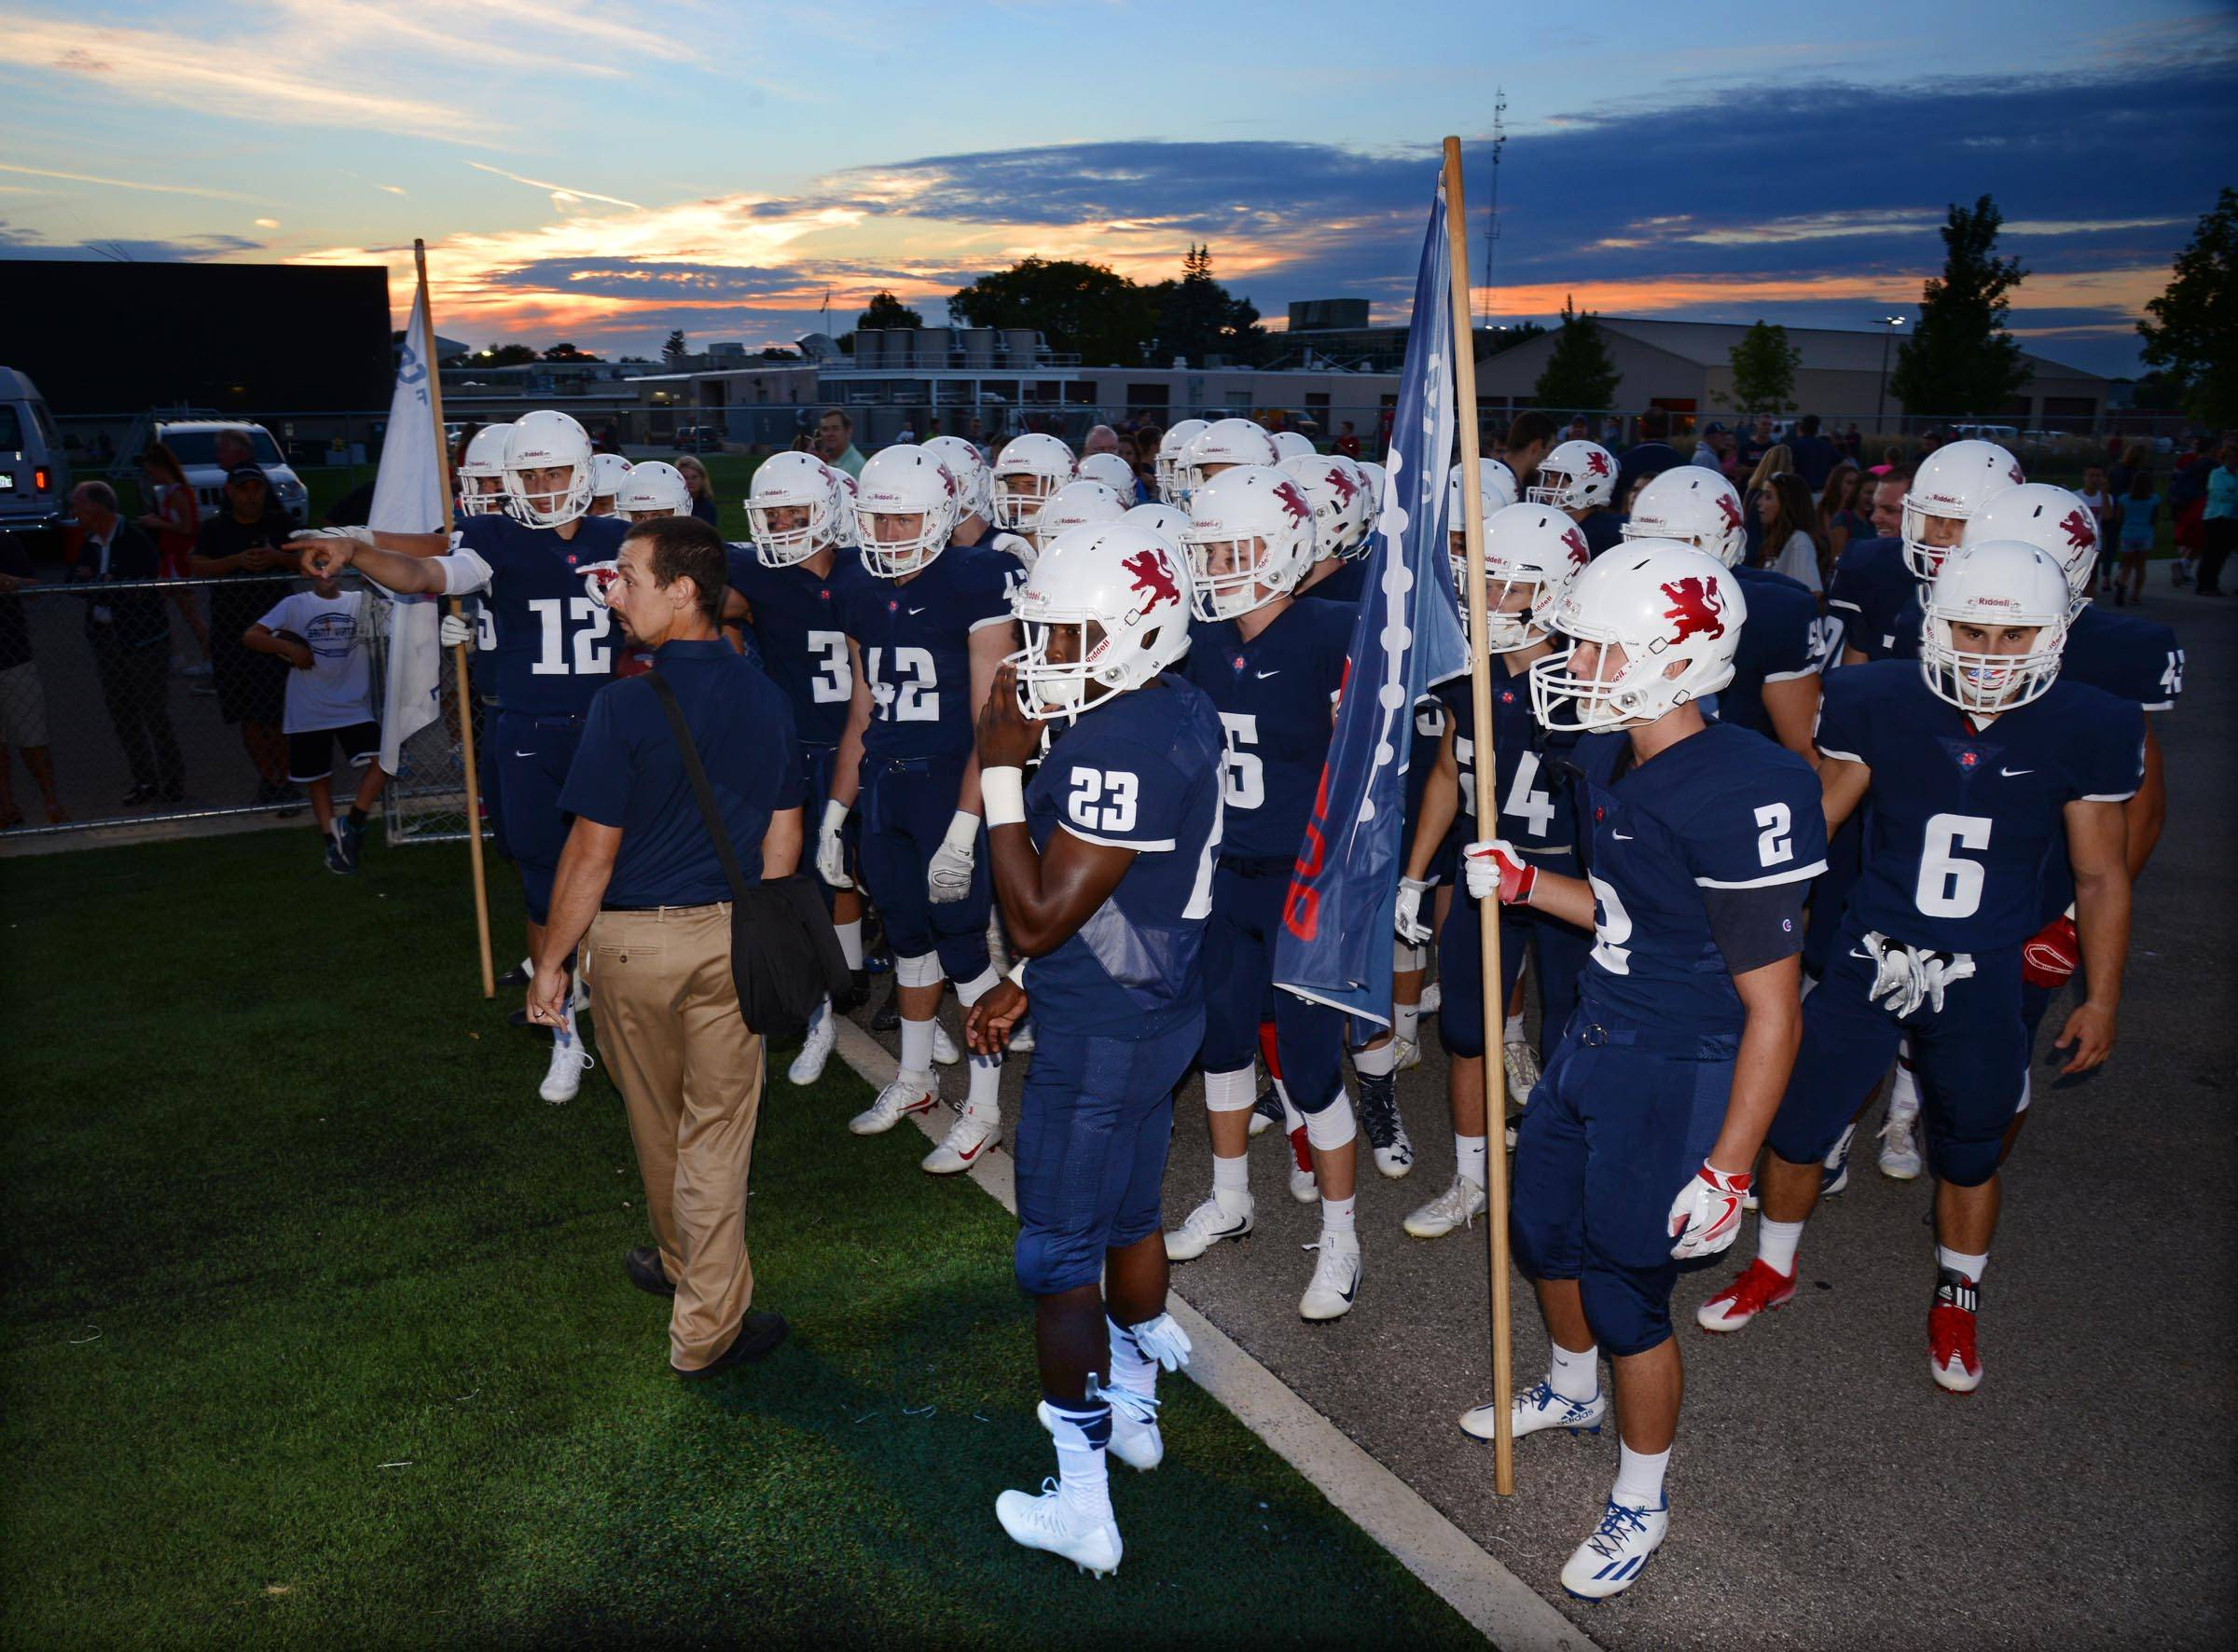 St. Viator prepares to come onto the field for their season opener against Rolling Meadows on Friday in Arlington Heights.